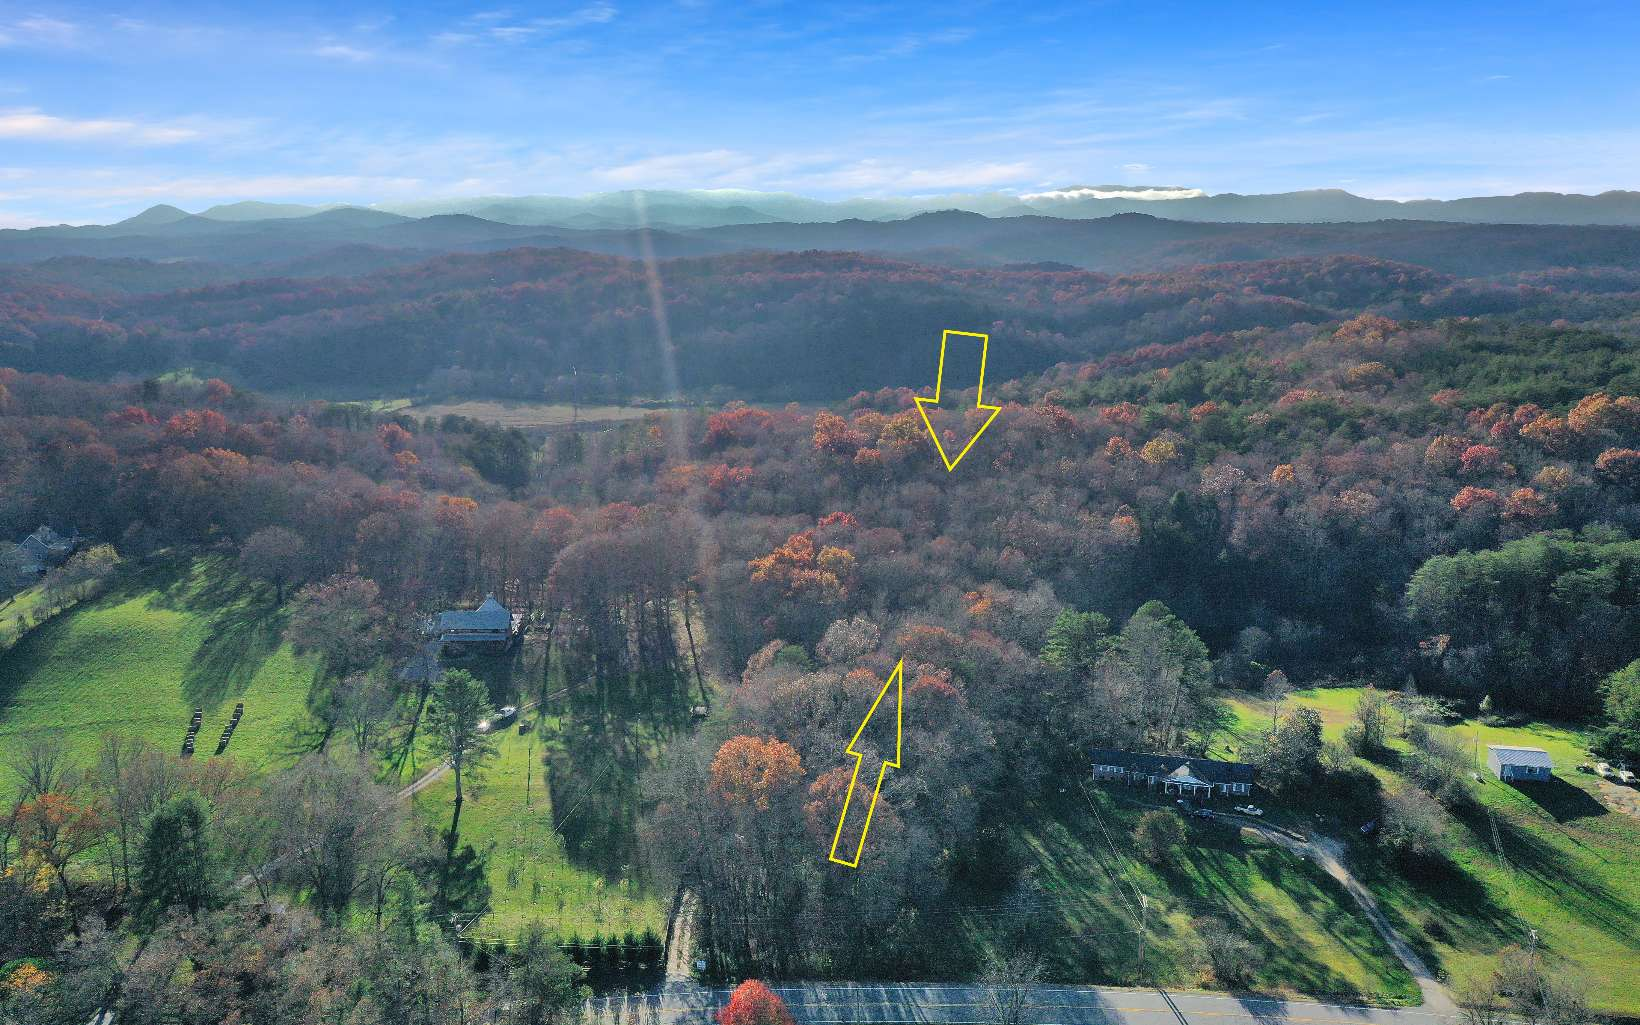 REDUCED!! Large Tract of Gentle Wooded Land with Flowing Branch. Several Building sites on Along Ridge Top. Would make a small Development or a 1 Home Retreat. Very Easy Access, (Road is a little Bumpy Now but drivable in any vehicle). Centrally Located Between Mineral Bluff and McCaysville, Close to Lake Blue Ridge & The Toccoa River and Hothouse Creek.